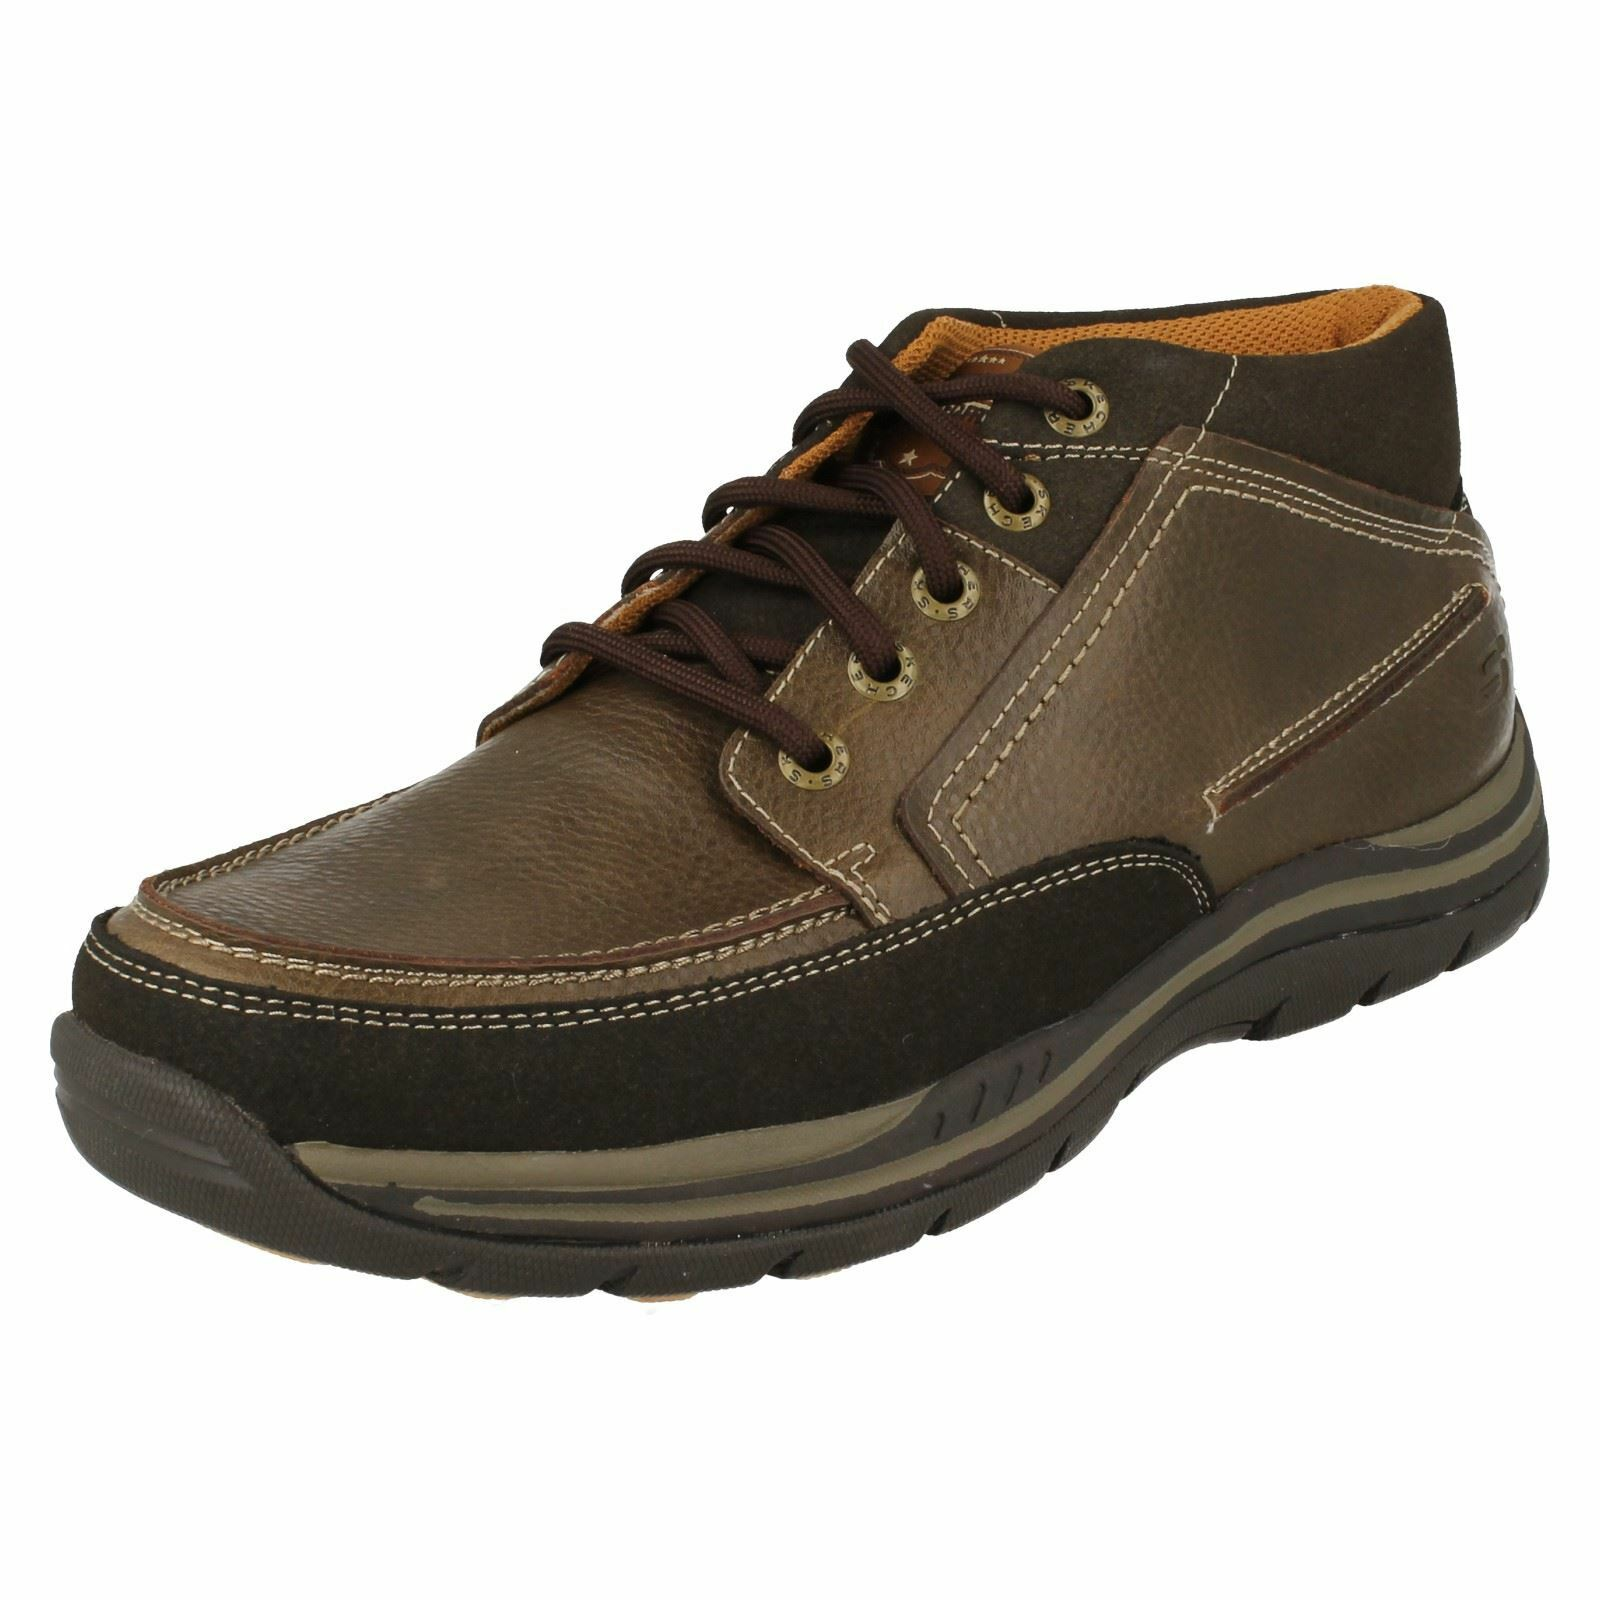 Foam Memory Relaxed Cason Skechers Mens Ankle Fit Stiefel